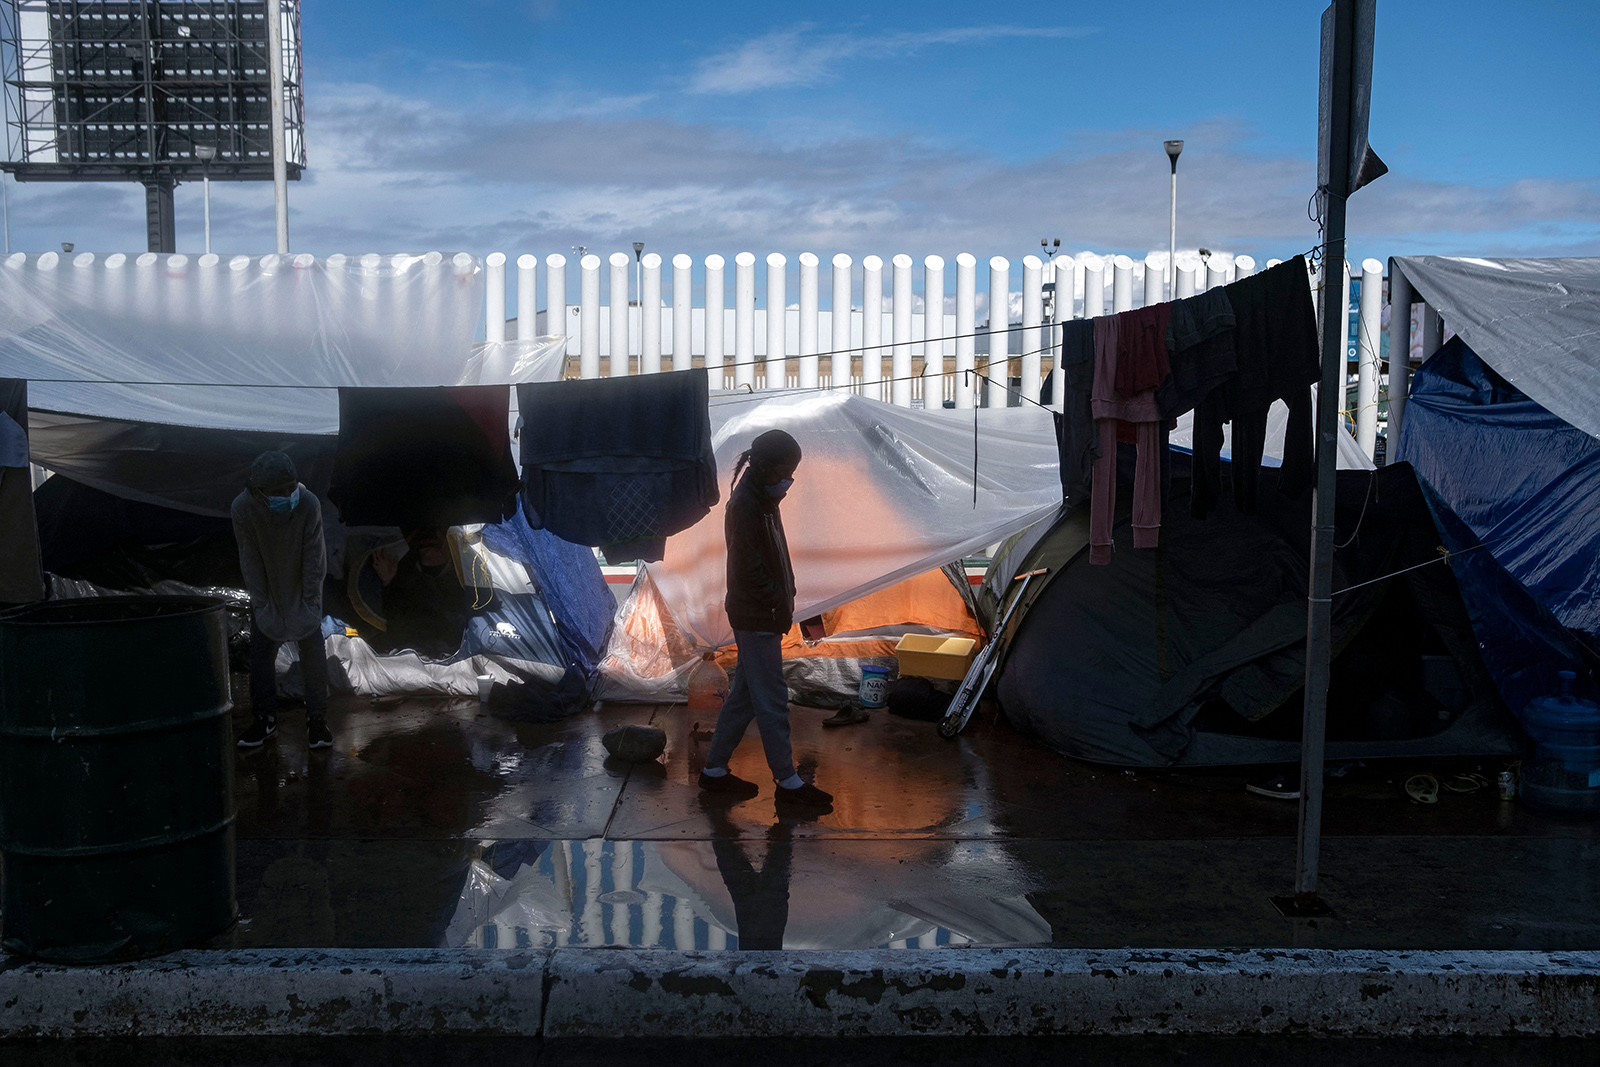 A migrant girl walks at an improvised camp outside El Chaparral crossing port as her and other wait for US authorities to allow them to start their migration process in Tijuana, Baja California state, Mexico, on March 11.